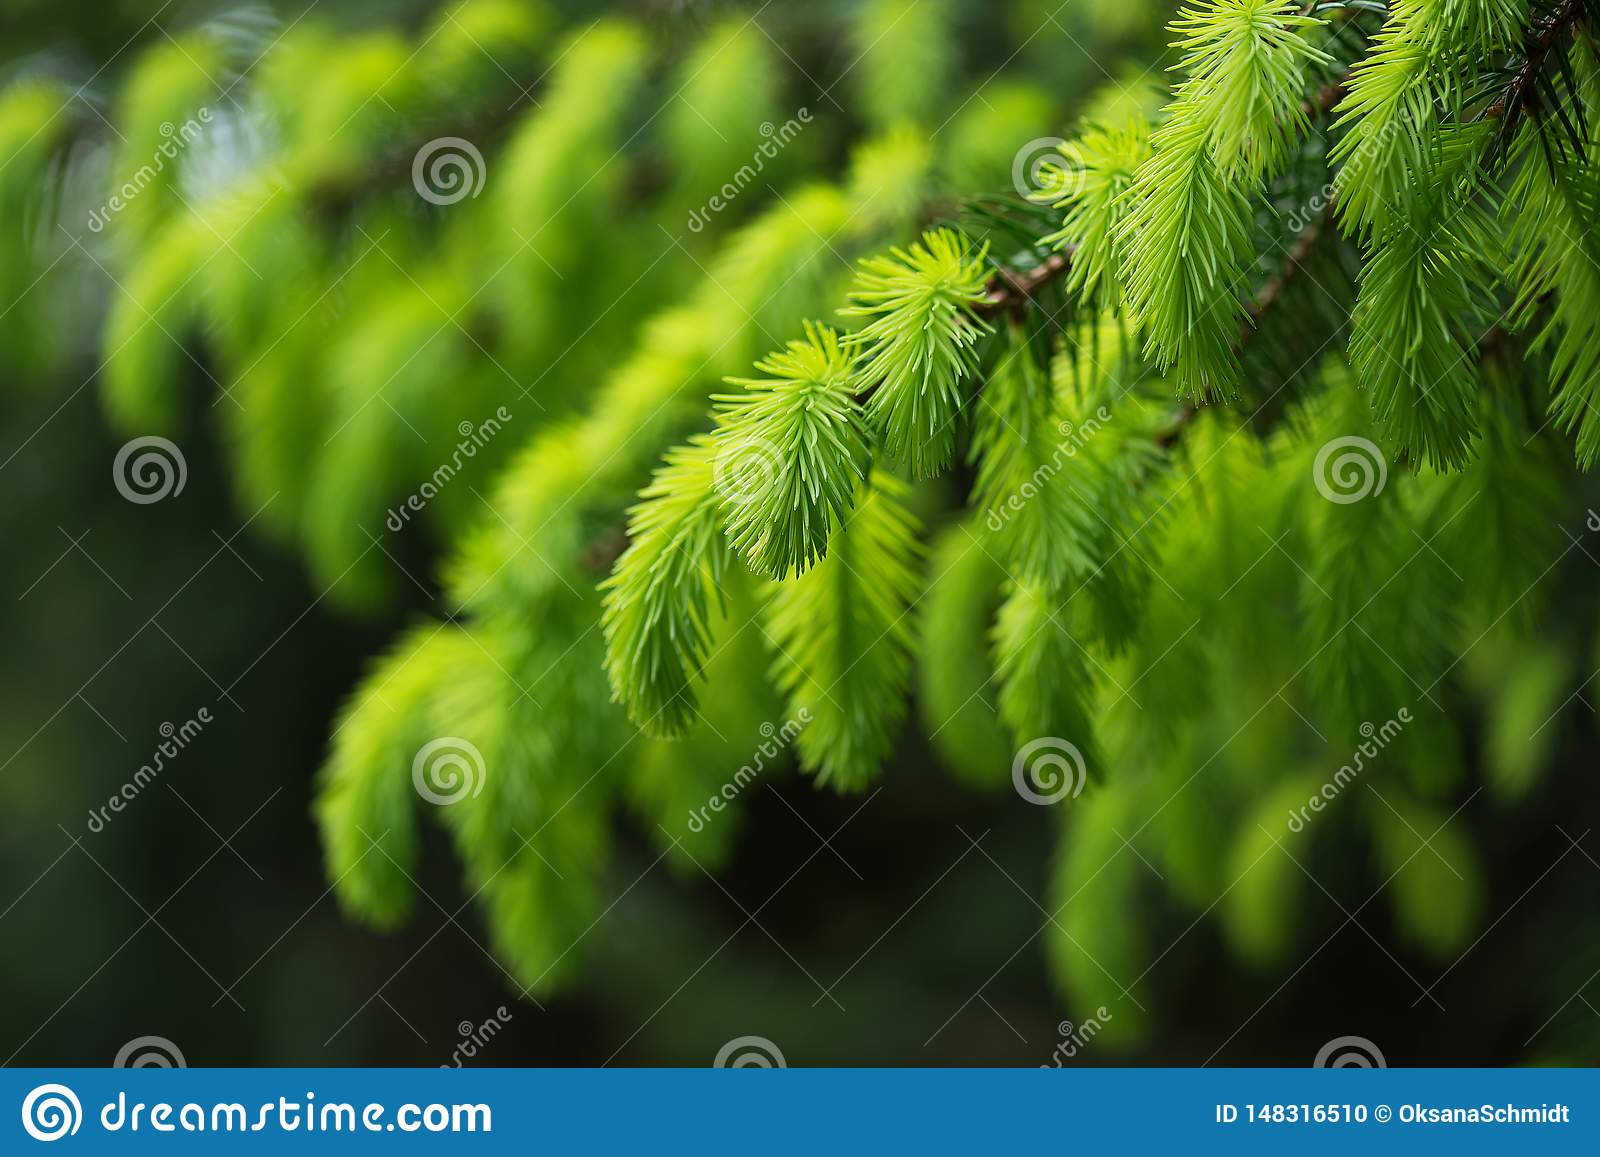 Fir tree branch with fresh young green shoots in springtime. Selective soft focus.